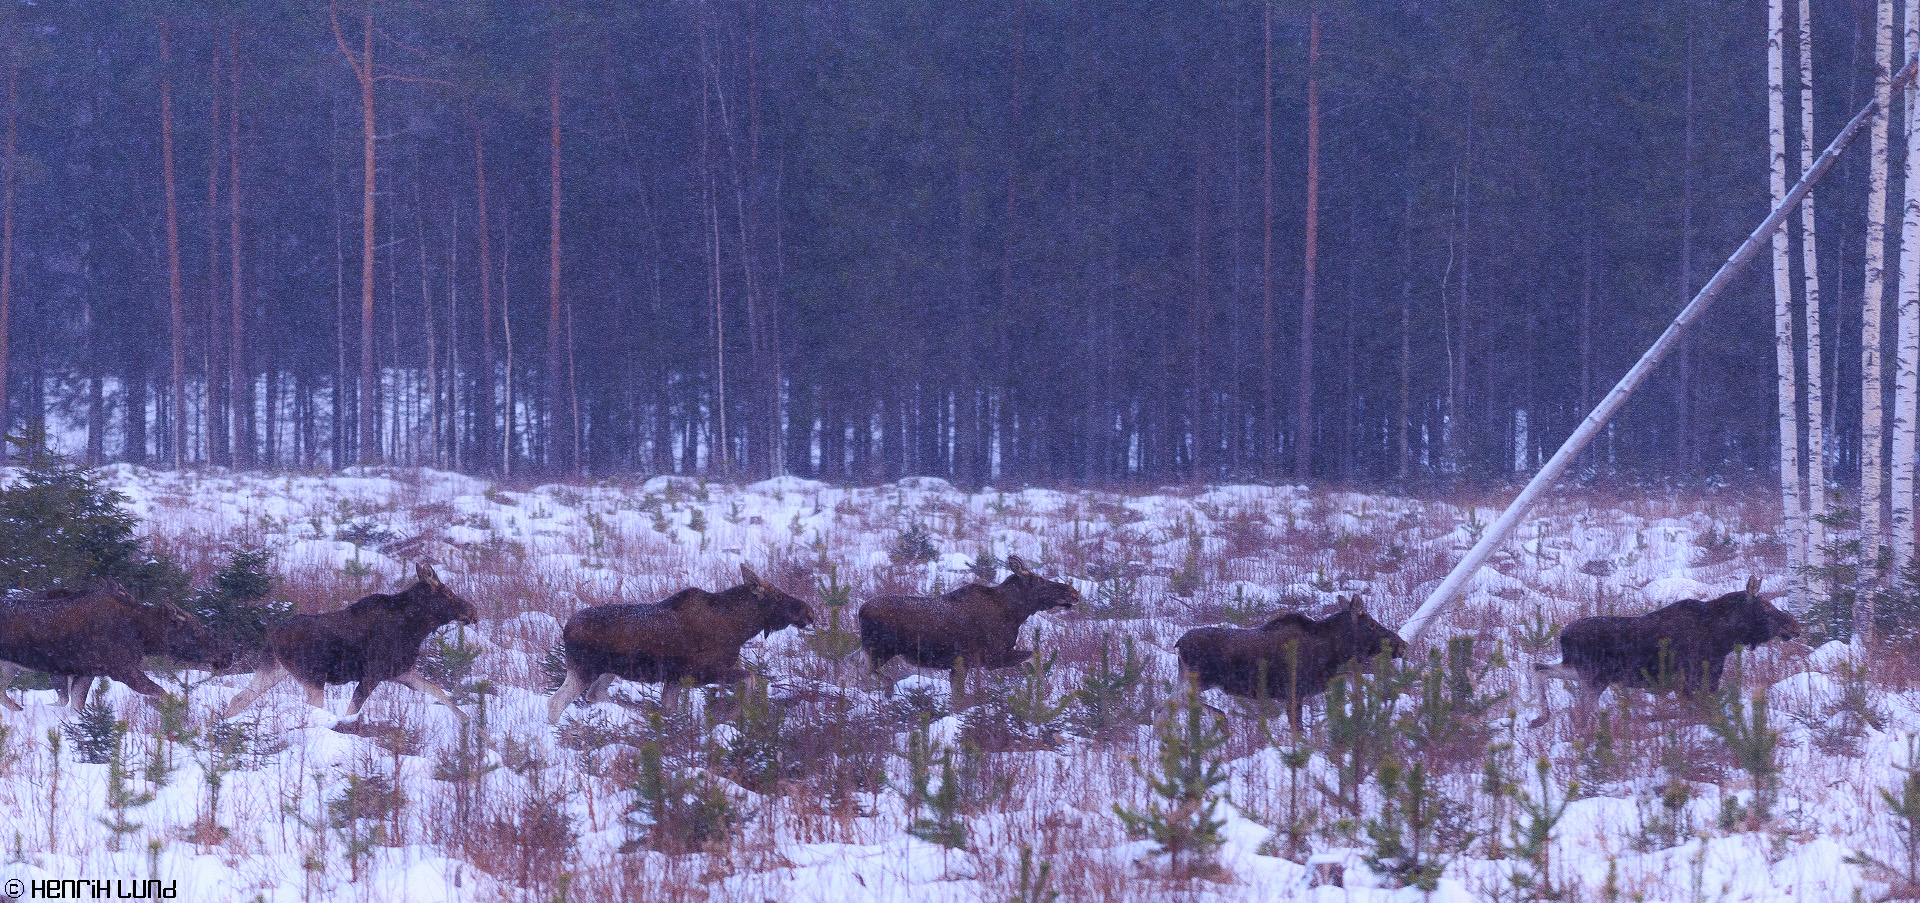 7 mooses on the run in the morning snowfall. Somerniemi, Finland, January 2015.